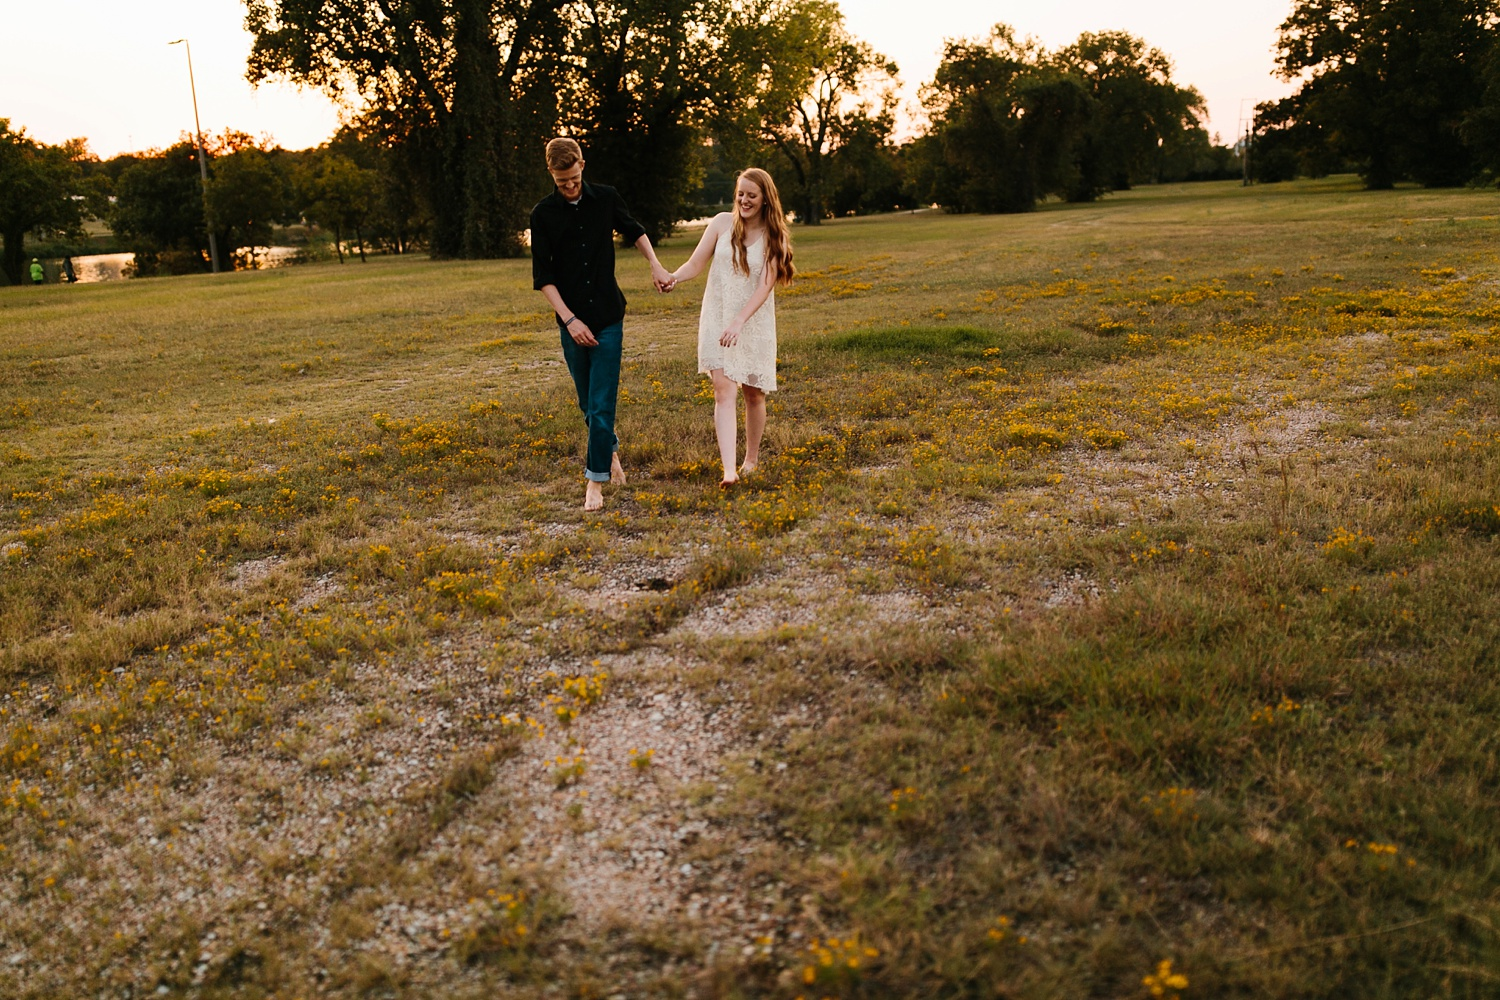 Kayla + Alex _ a joyful and loving engagement shoot in Waco, Texas by North Texas Wedding Photographer Rachel Meagan Photography _53